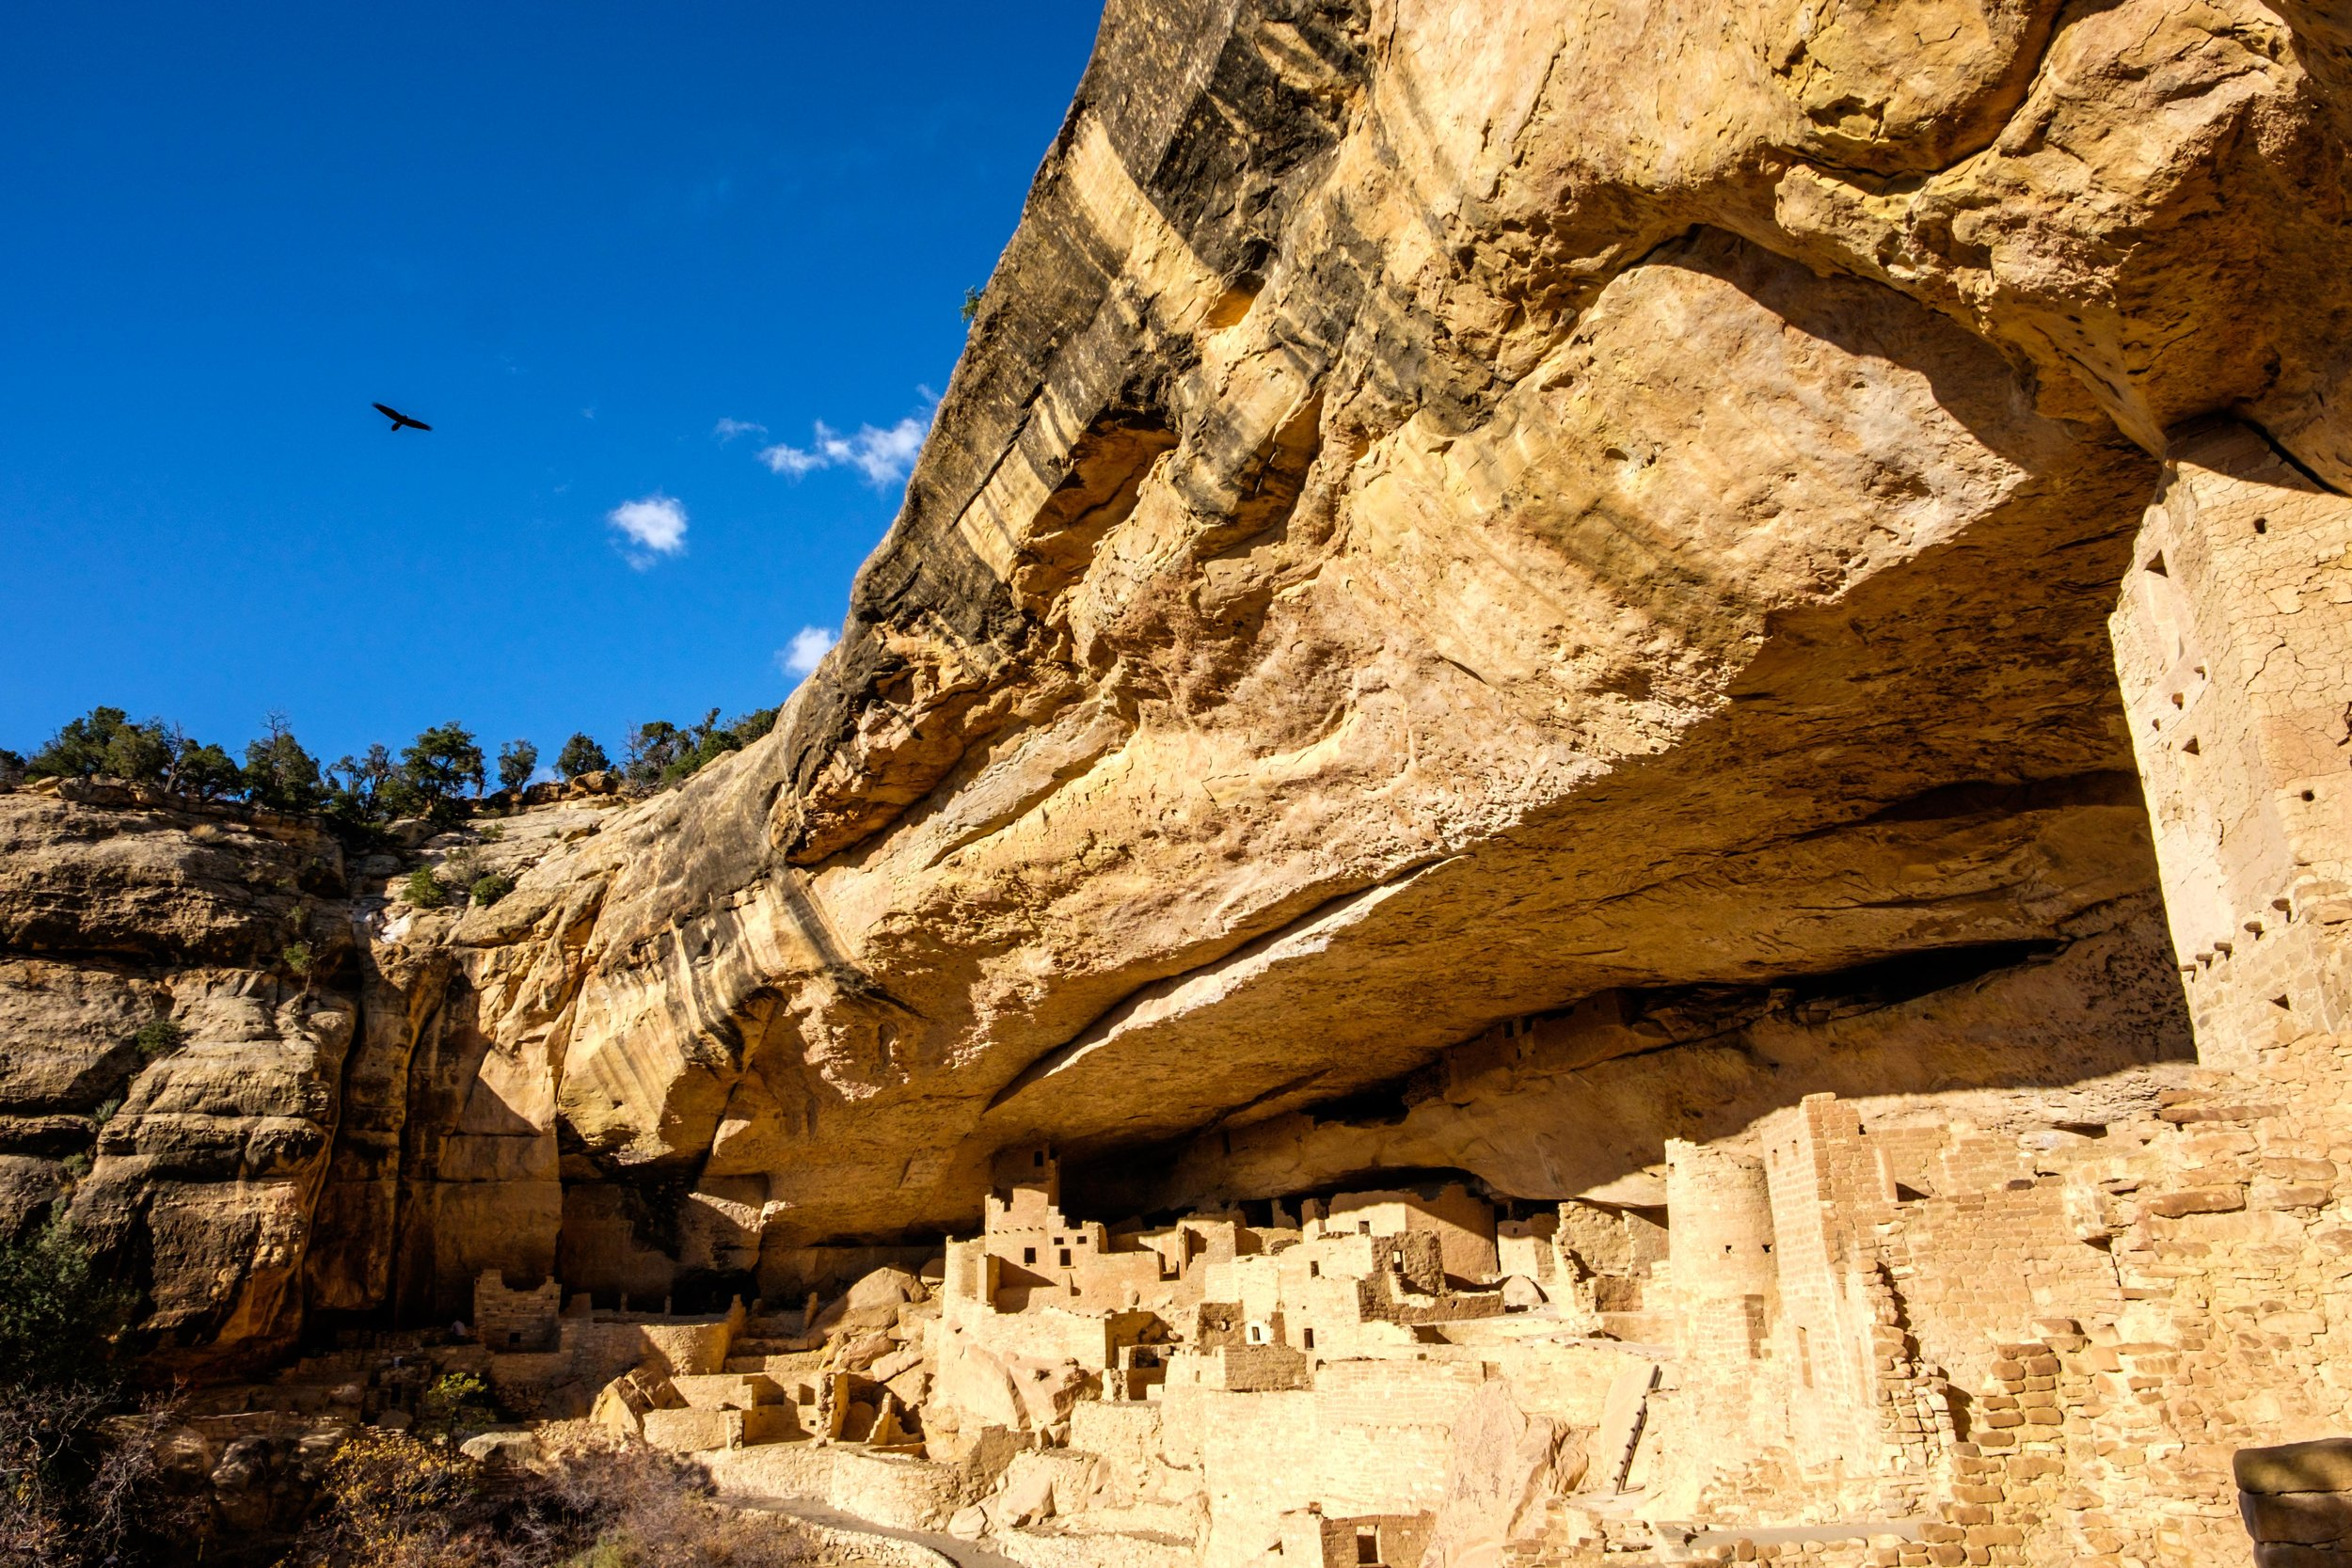 The raven flies overhead, a symbol of ancient Puebloan culture, and according to legend, a courier of magic.